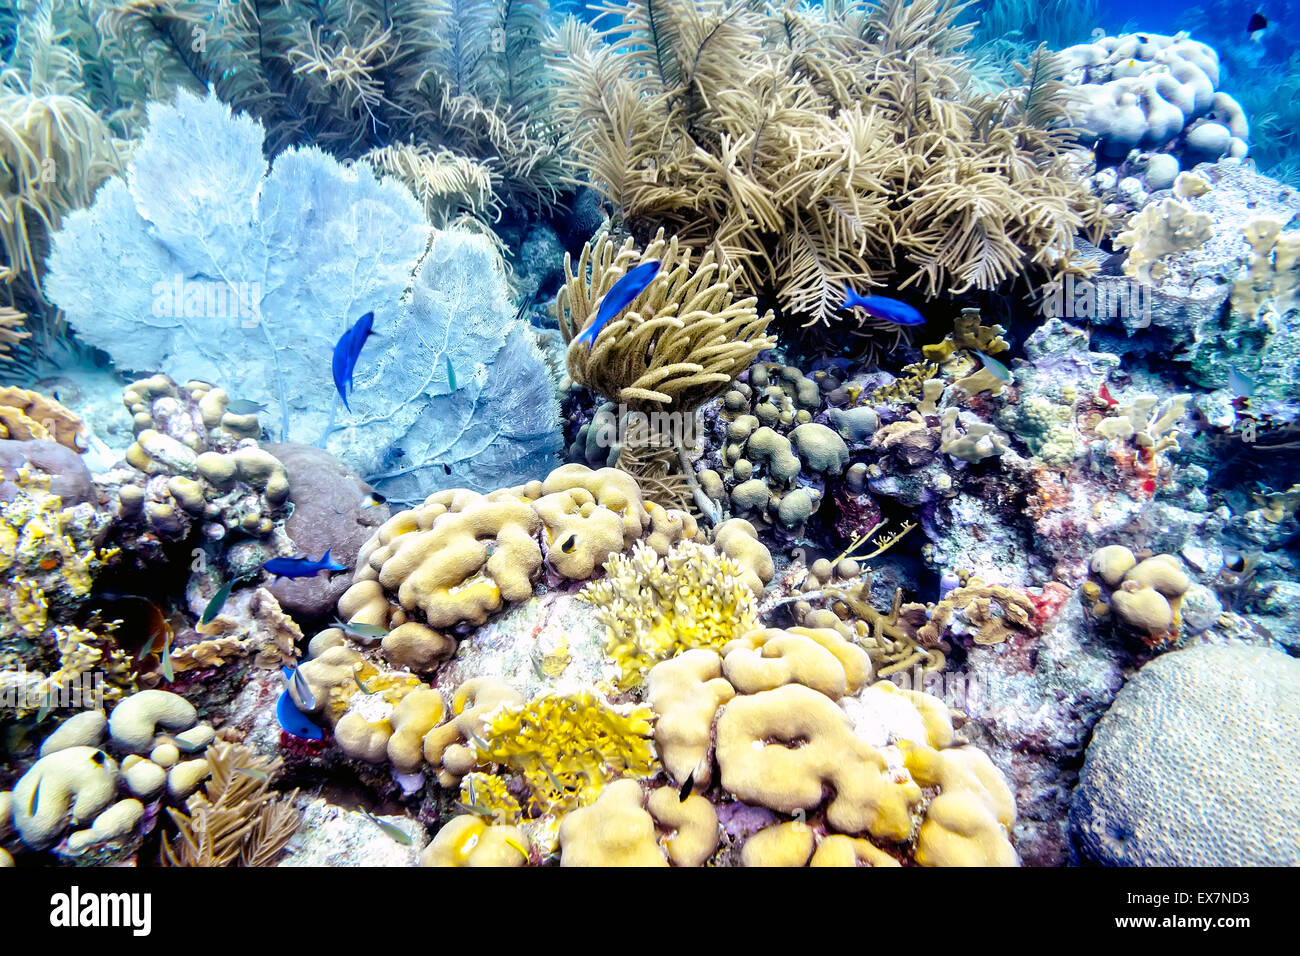 Blue Chromis swimming among Sea Fans, Sea Rods, Brain Corals and sponges at the Sharon's Serenity site in Klein - Stock Image